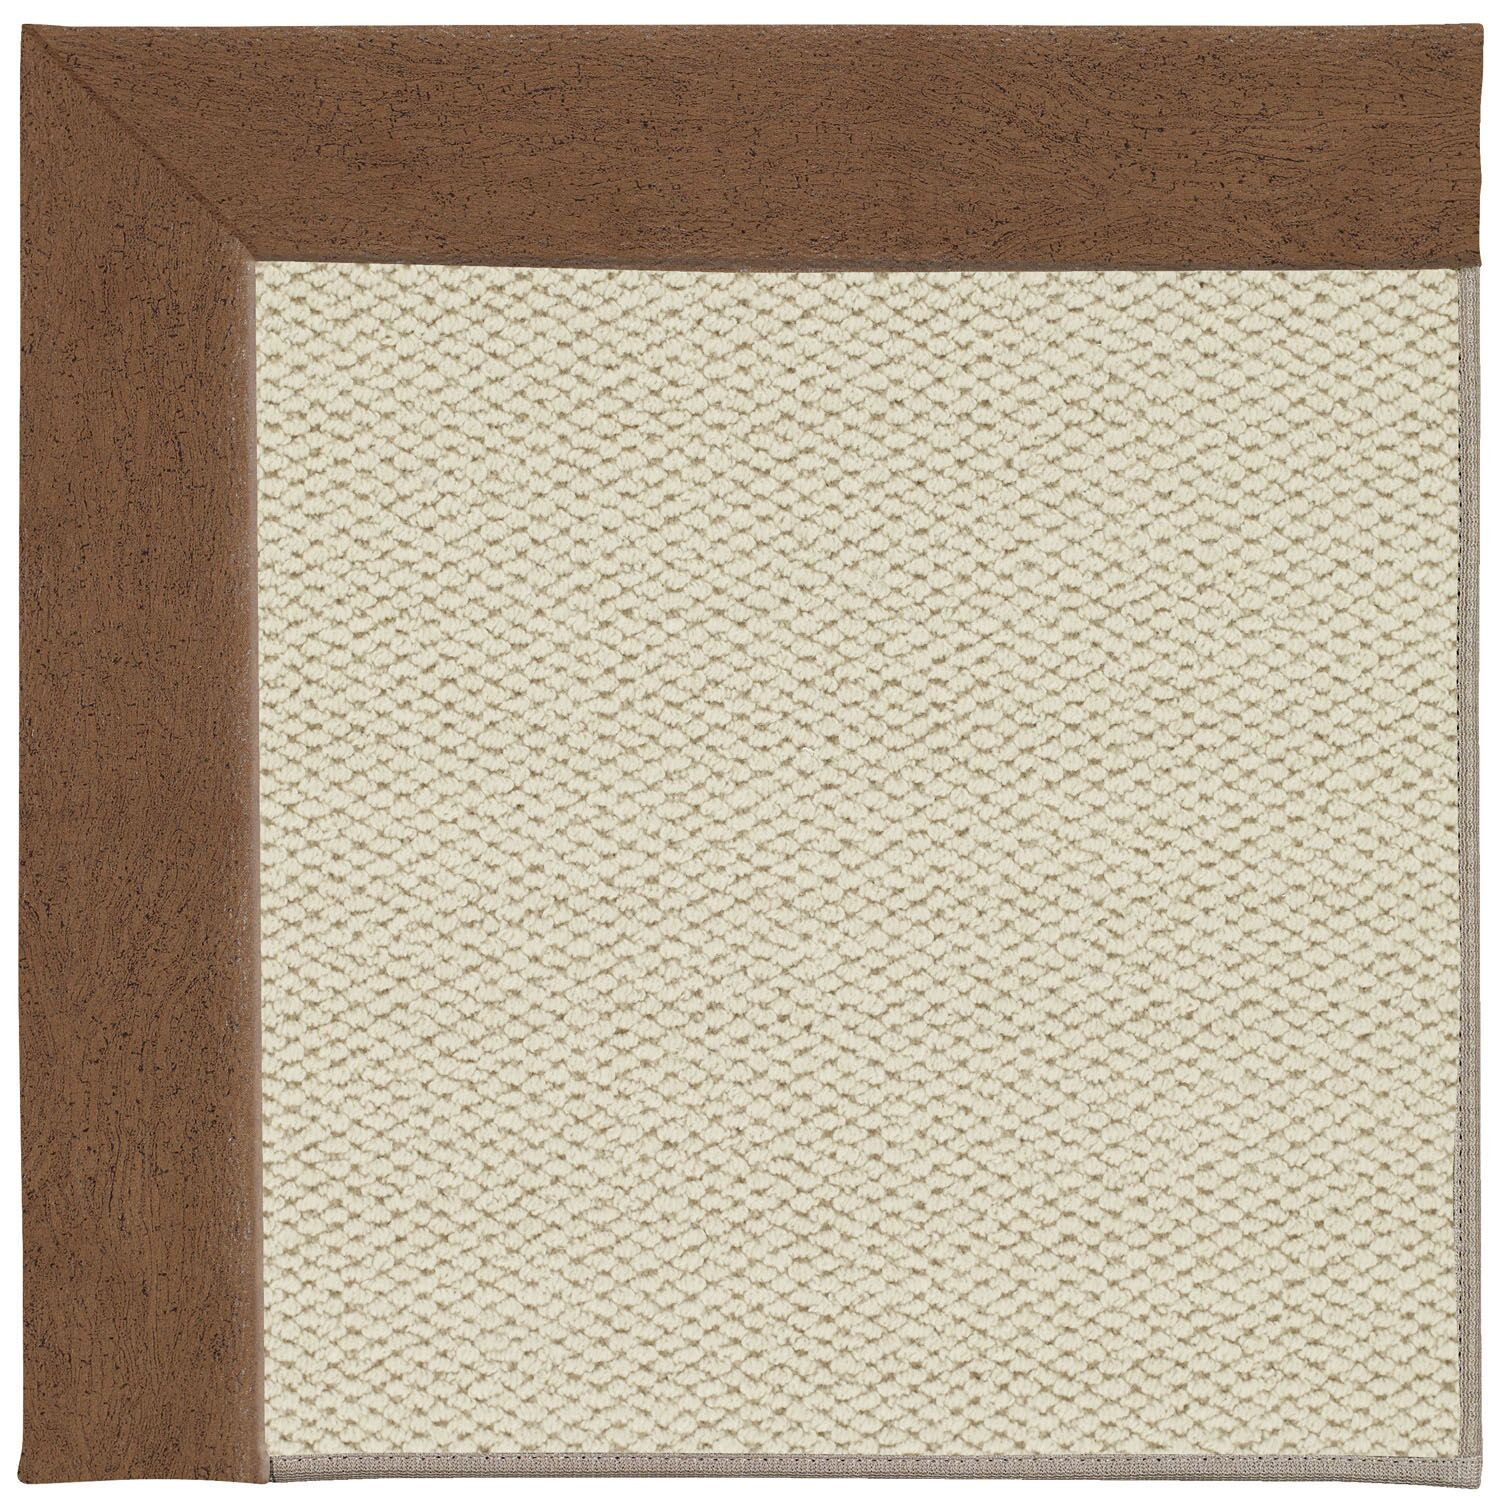 Barrett Linen Machine Tufted Camel/Brown Area Rug Rug Size: Square 8'